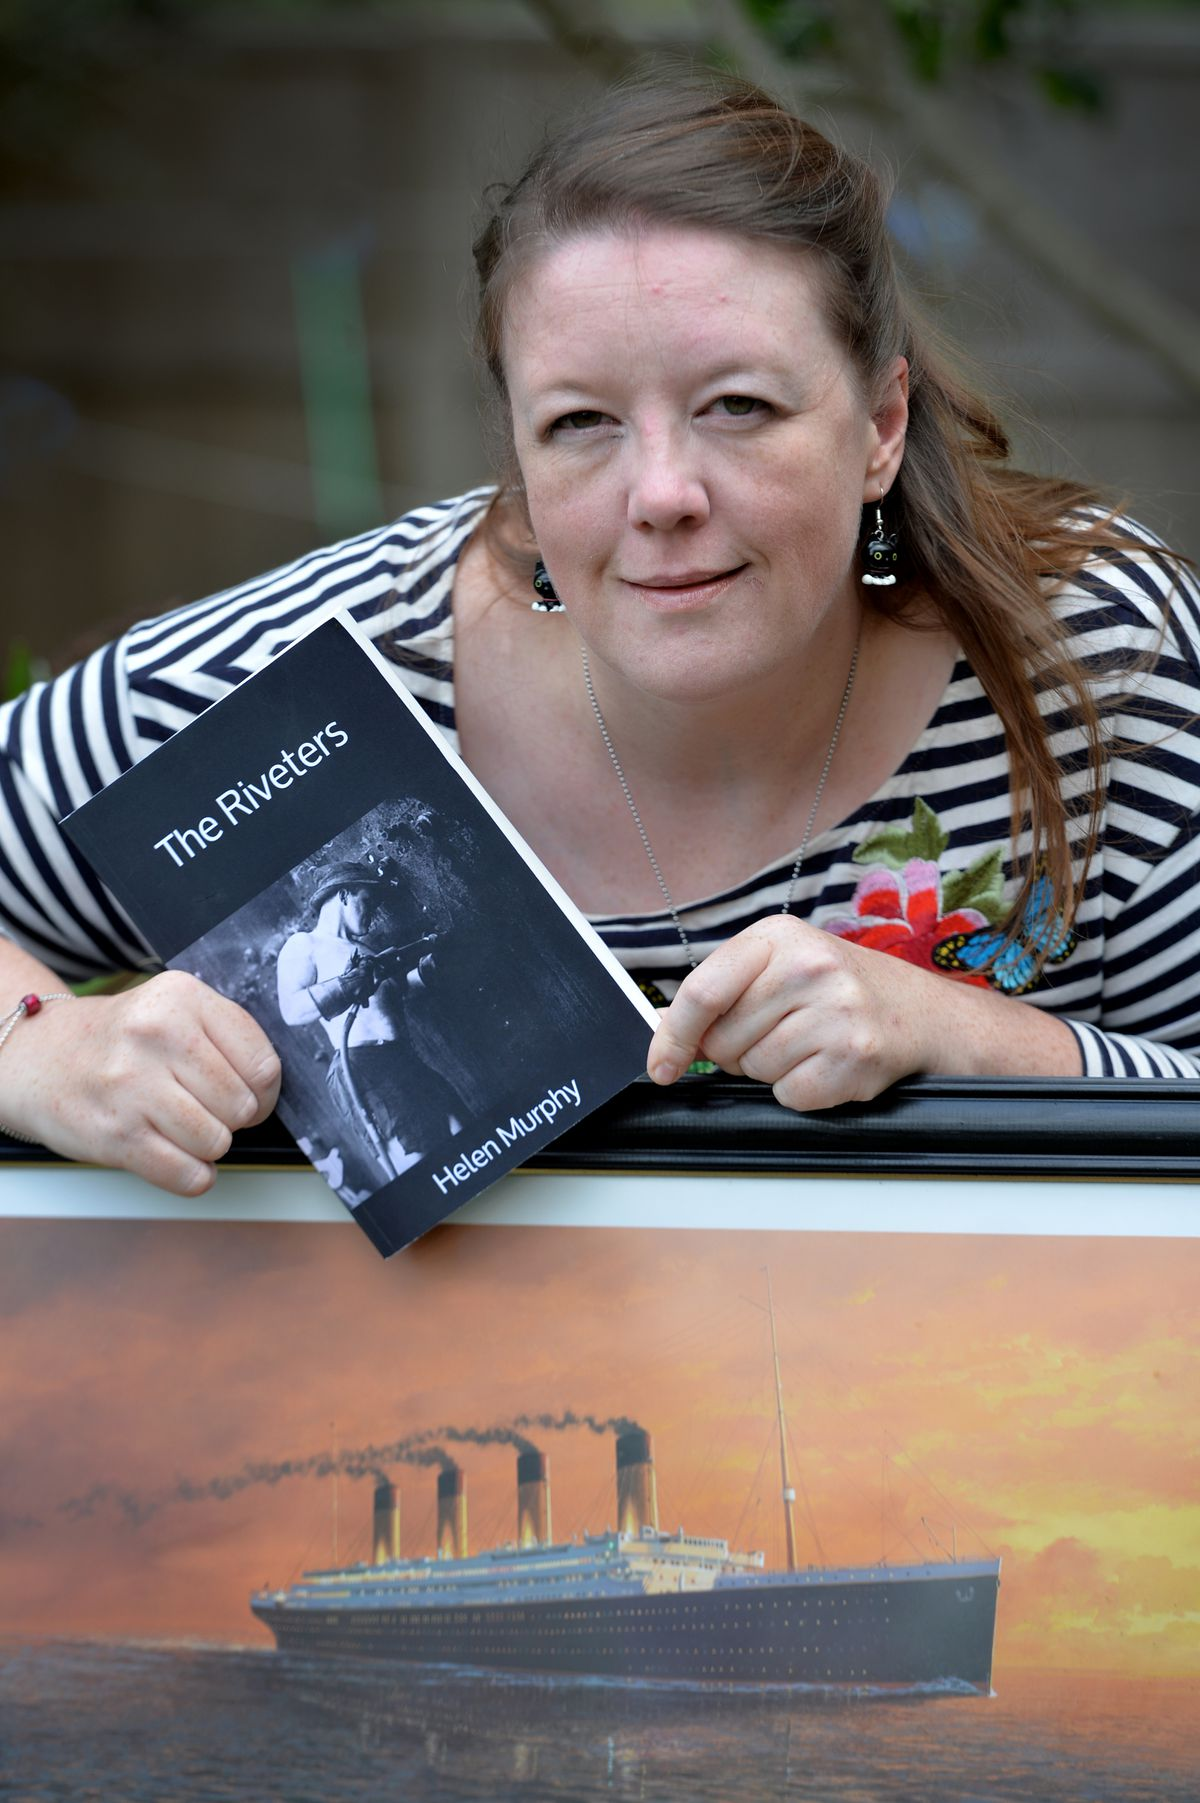 Author Helen Murphy from Wednesbury, has written a book titled The Riveters.